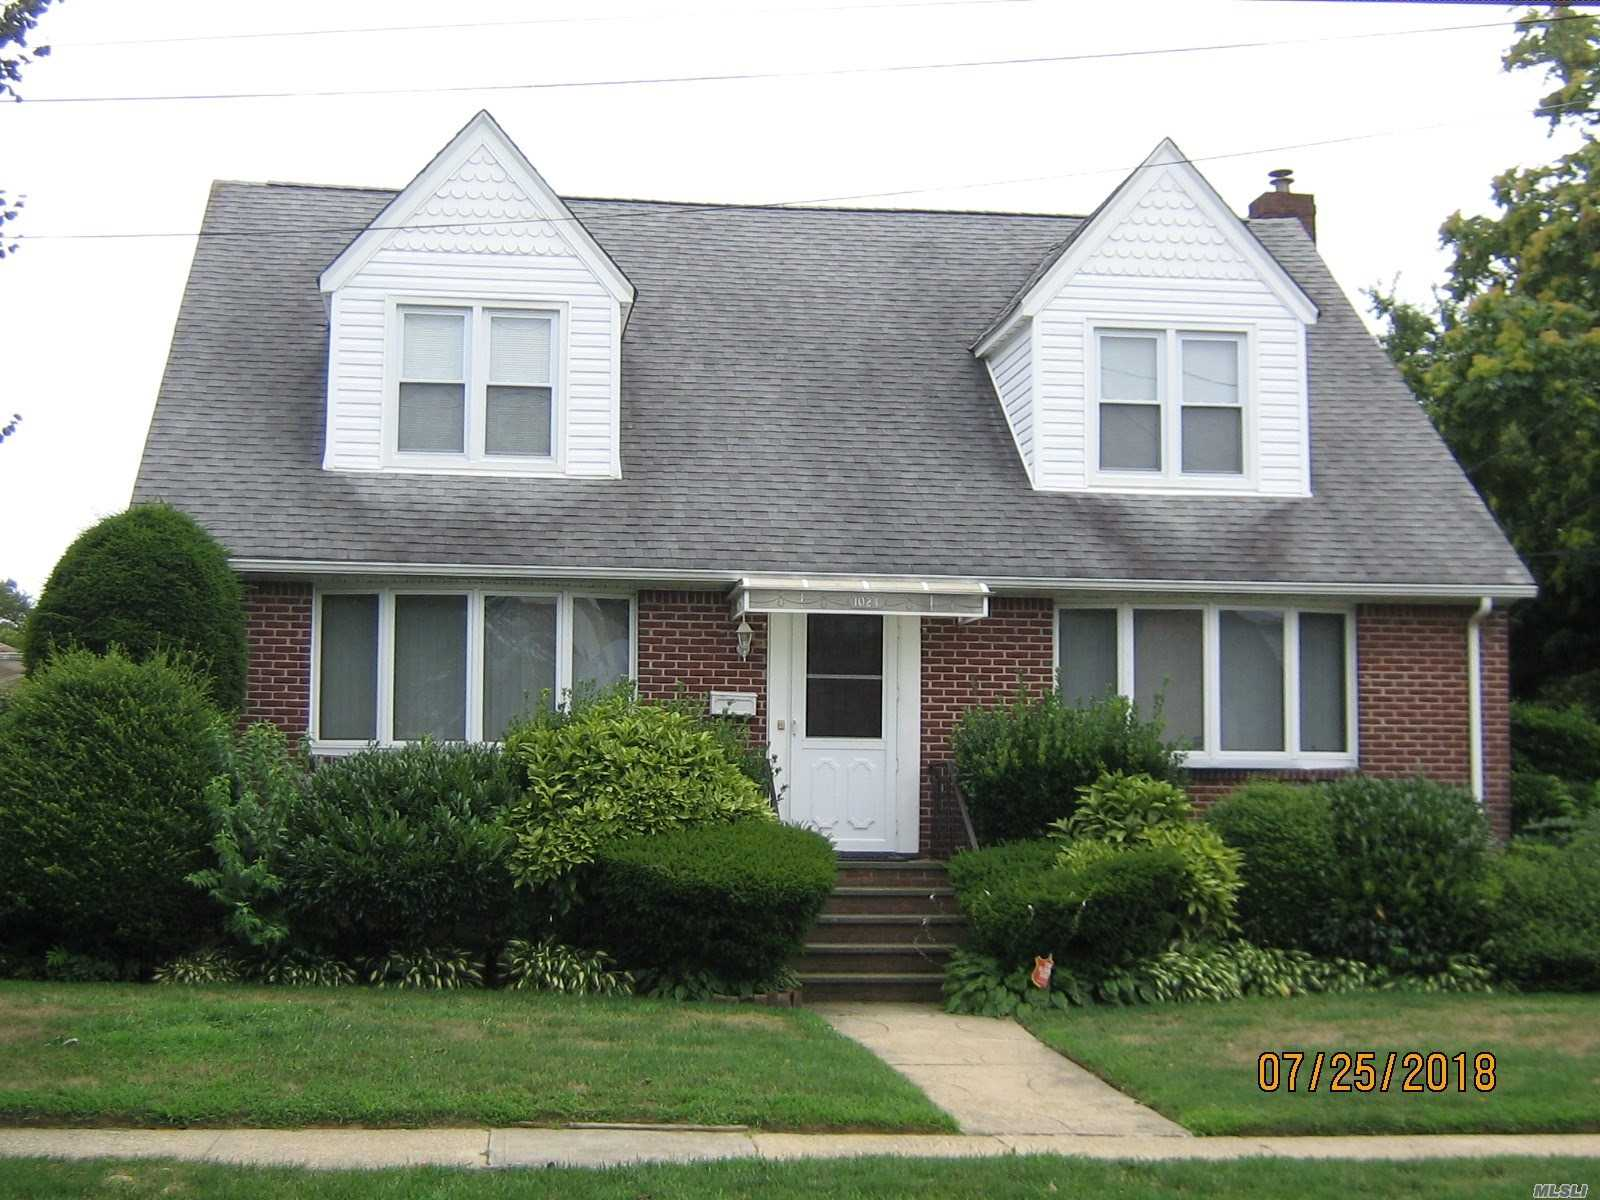 Legal 2 Family. Well Built Home With Large Rooms In Mint Condition. Convenient To Lirr, Shopping, Jfk. Must Be Owner Occupied For 2 Family Certification!